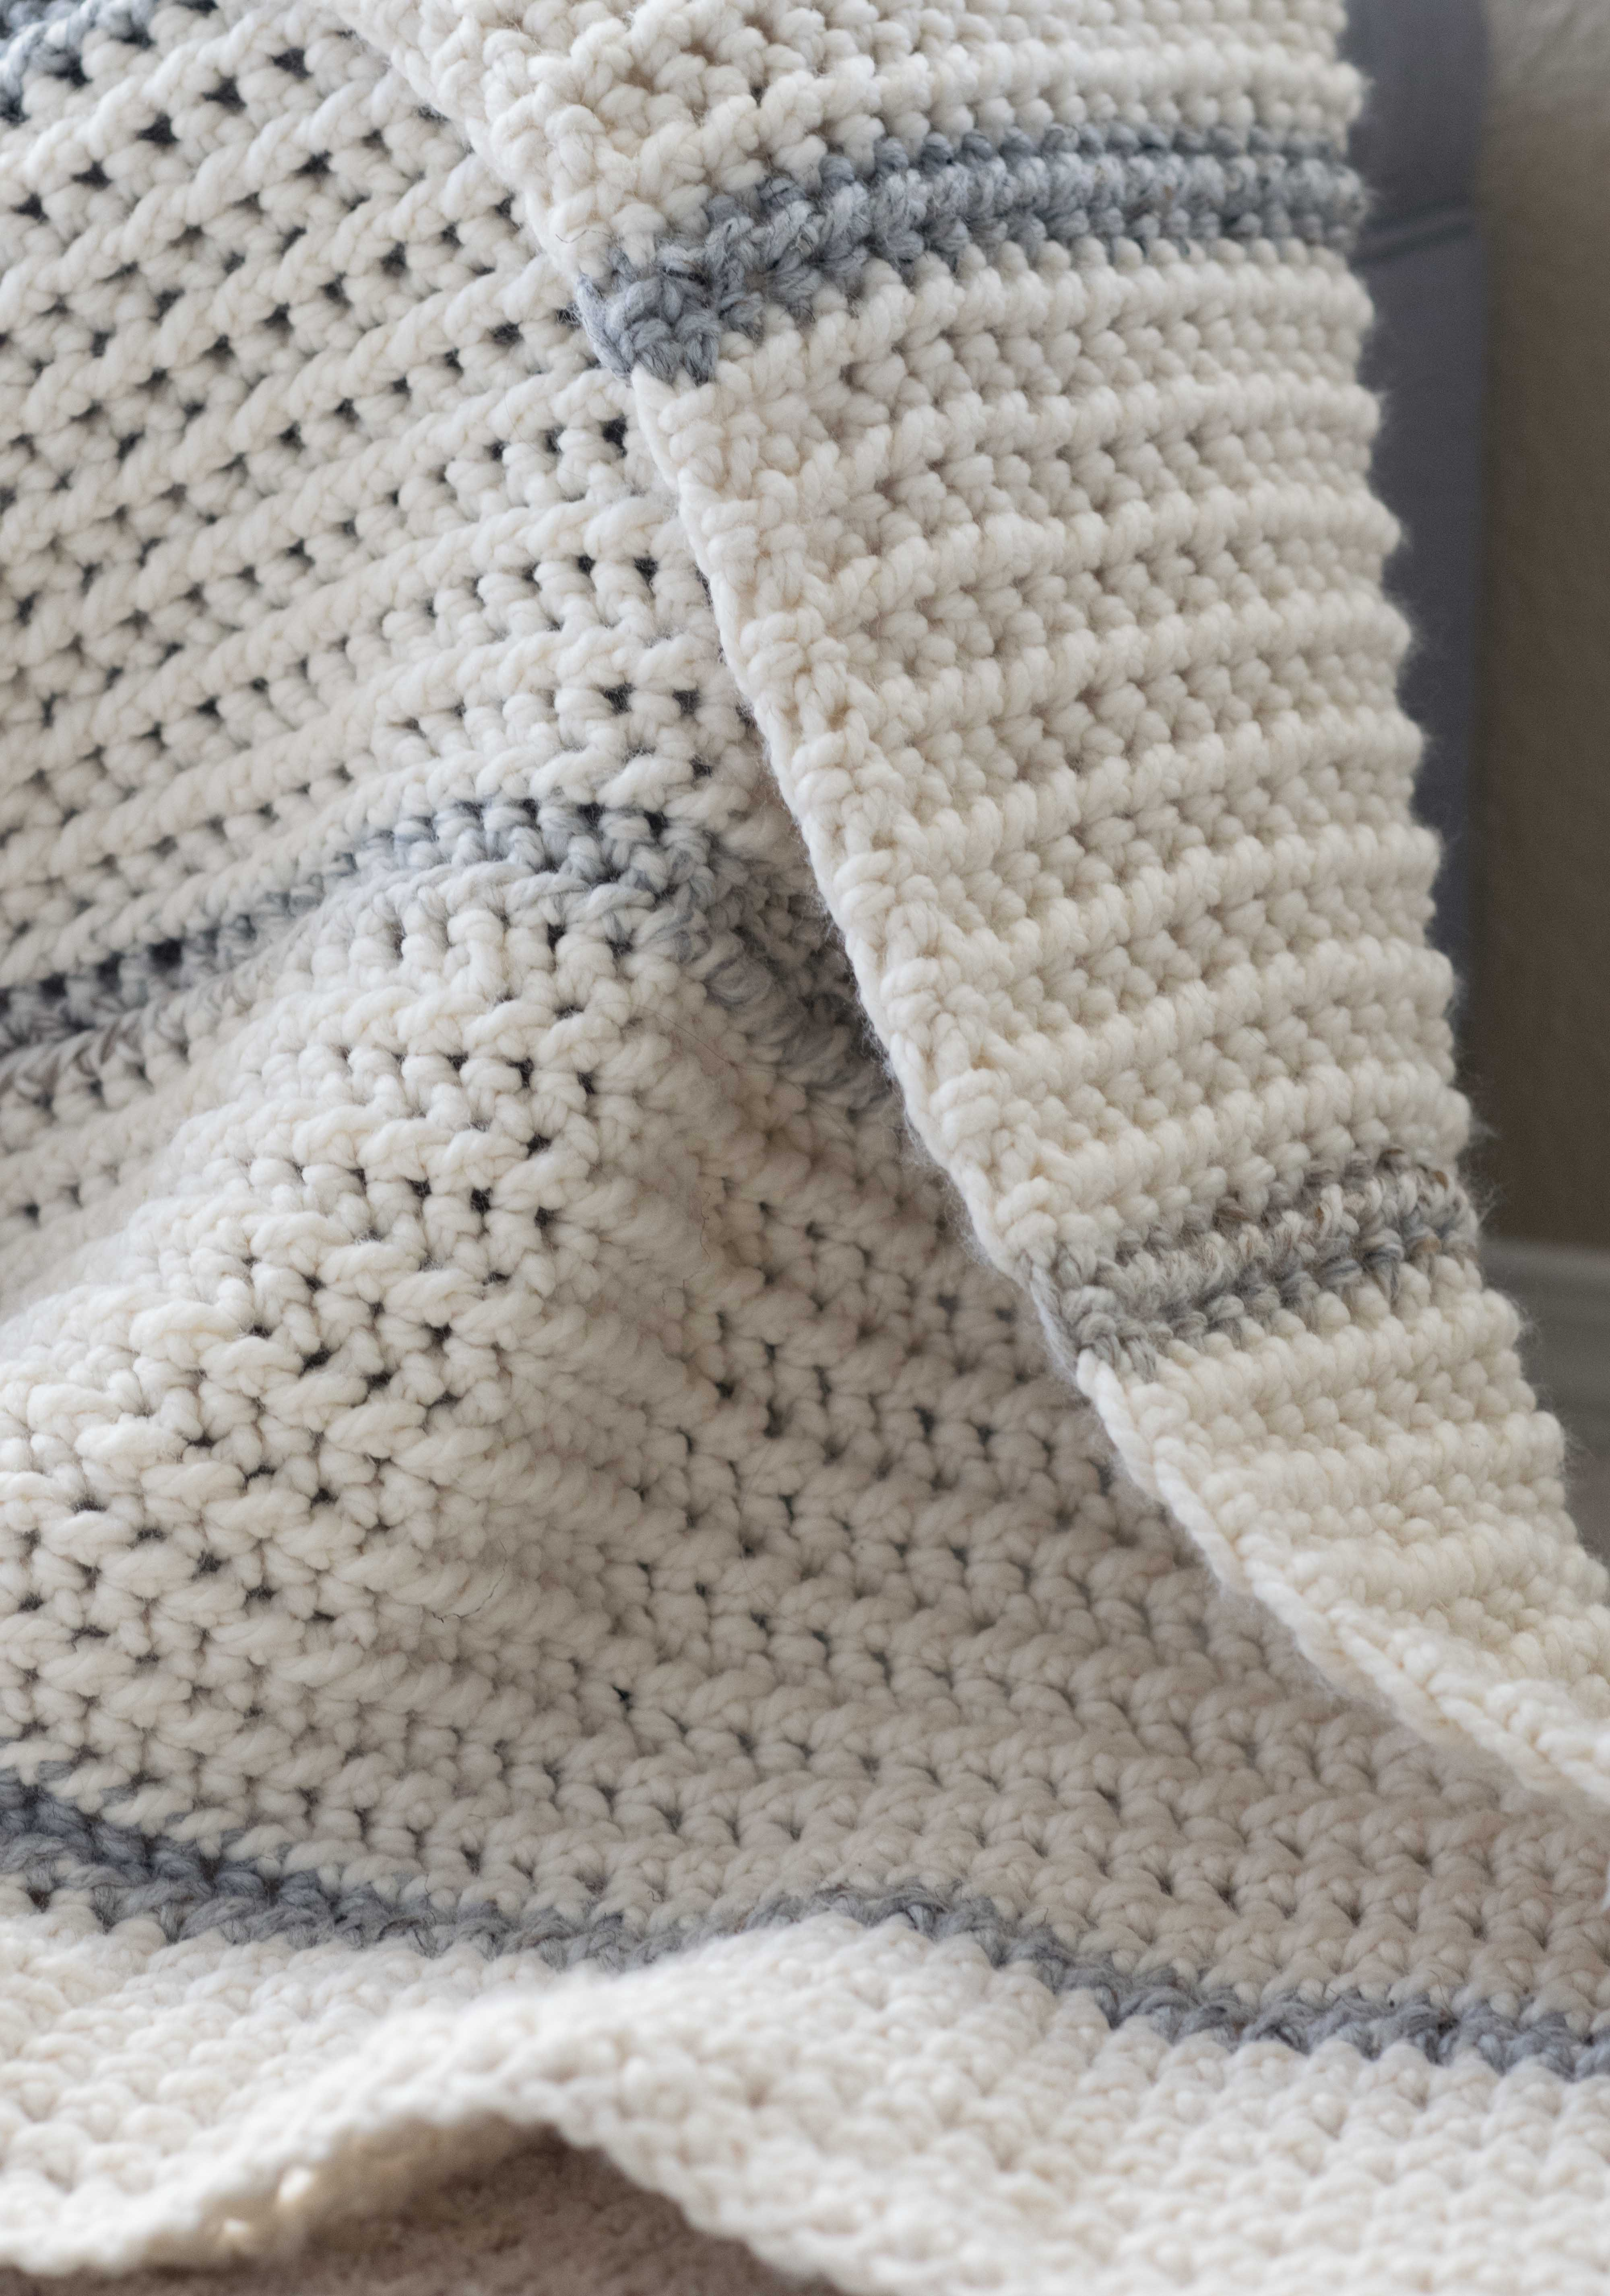 Winter Chunky Ribbed Crochet Afghan Pattern Mama In A Stitch